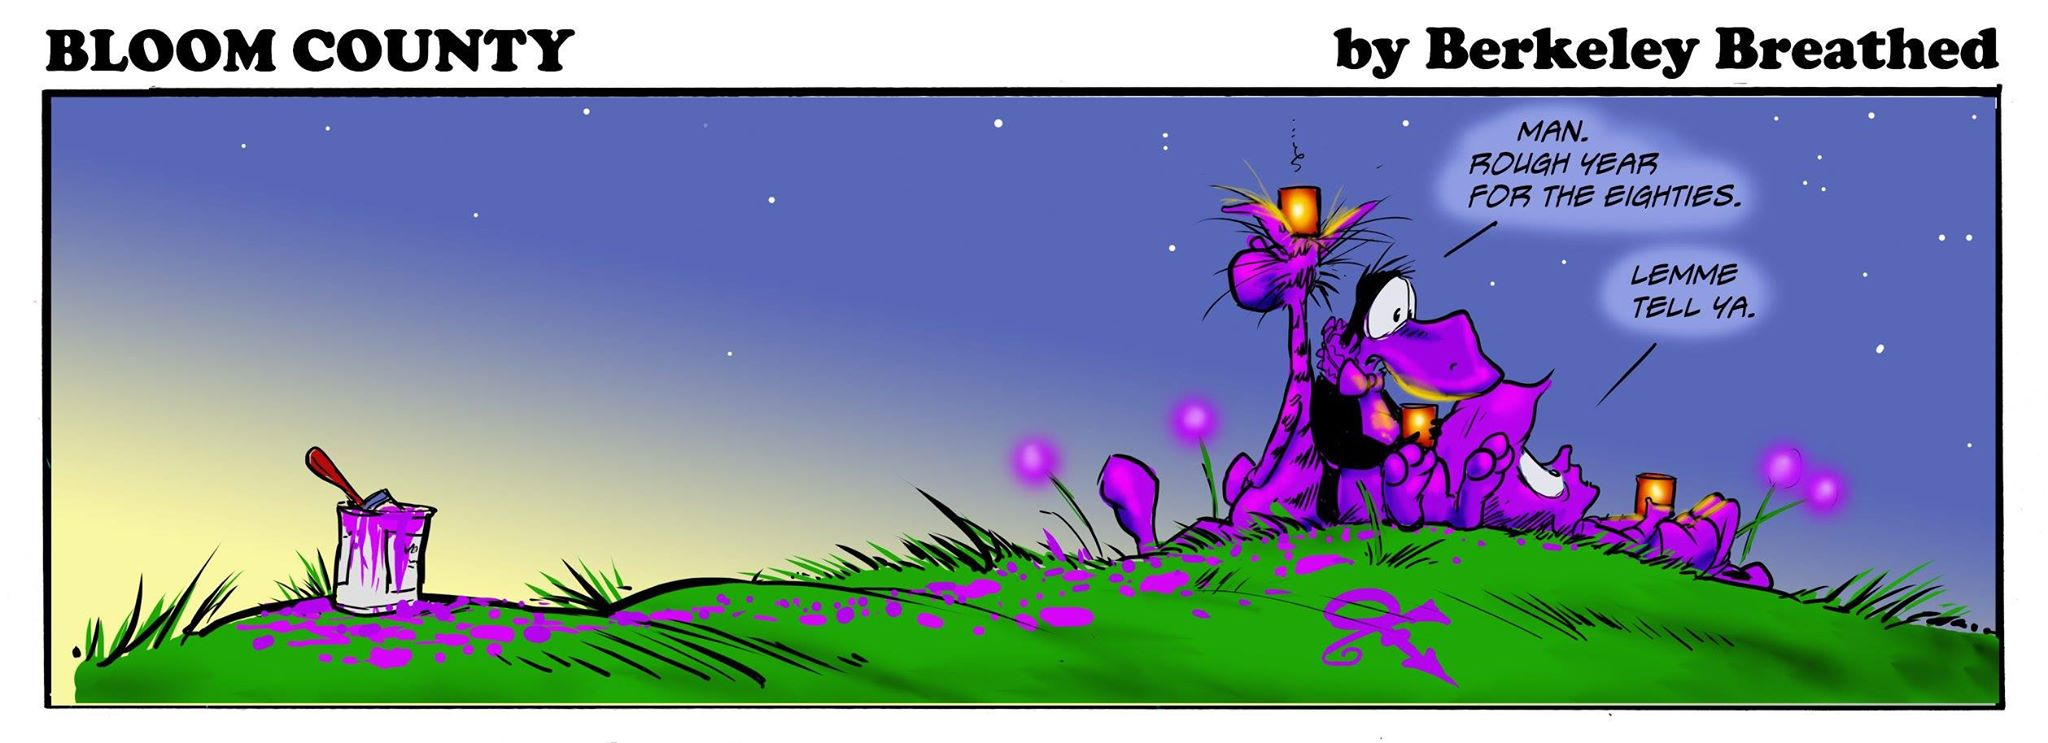 bloomcounty20150421